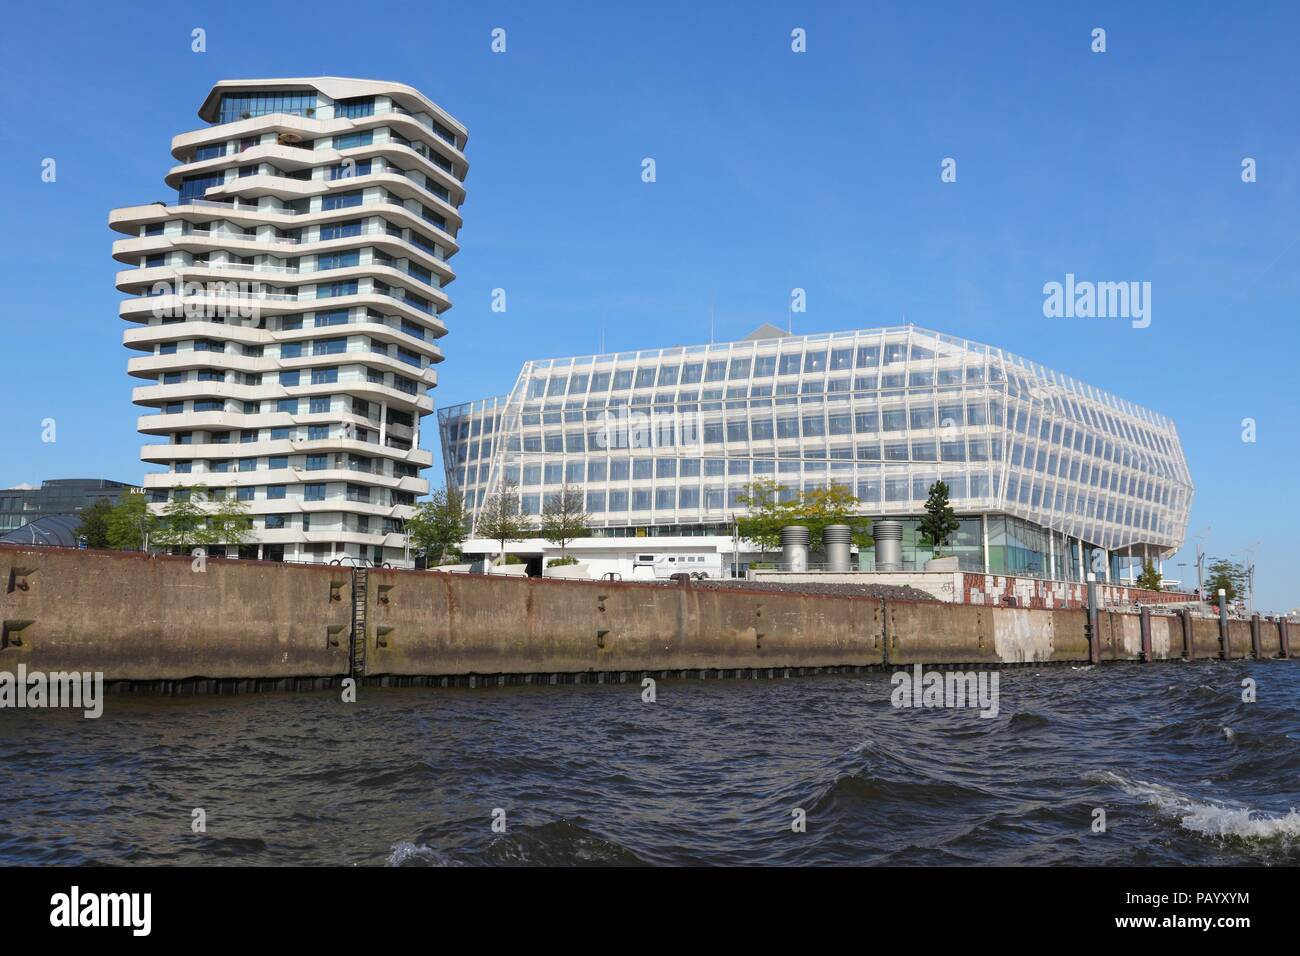 HAMBURG, GERMANY - AUGUST 28, 2014: Unilever Germany headquarters in Hamburg (the building on the right). Unilever is a British-Dutch consumer goods c - Stock Image